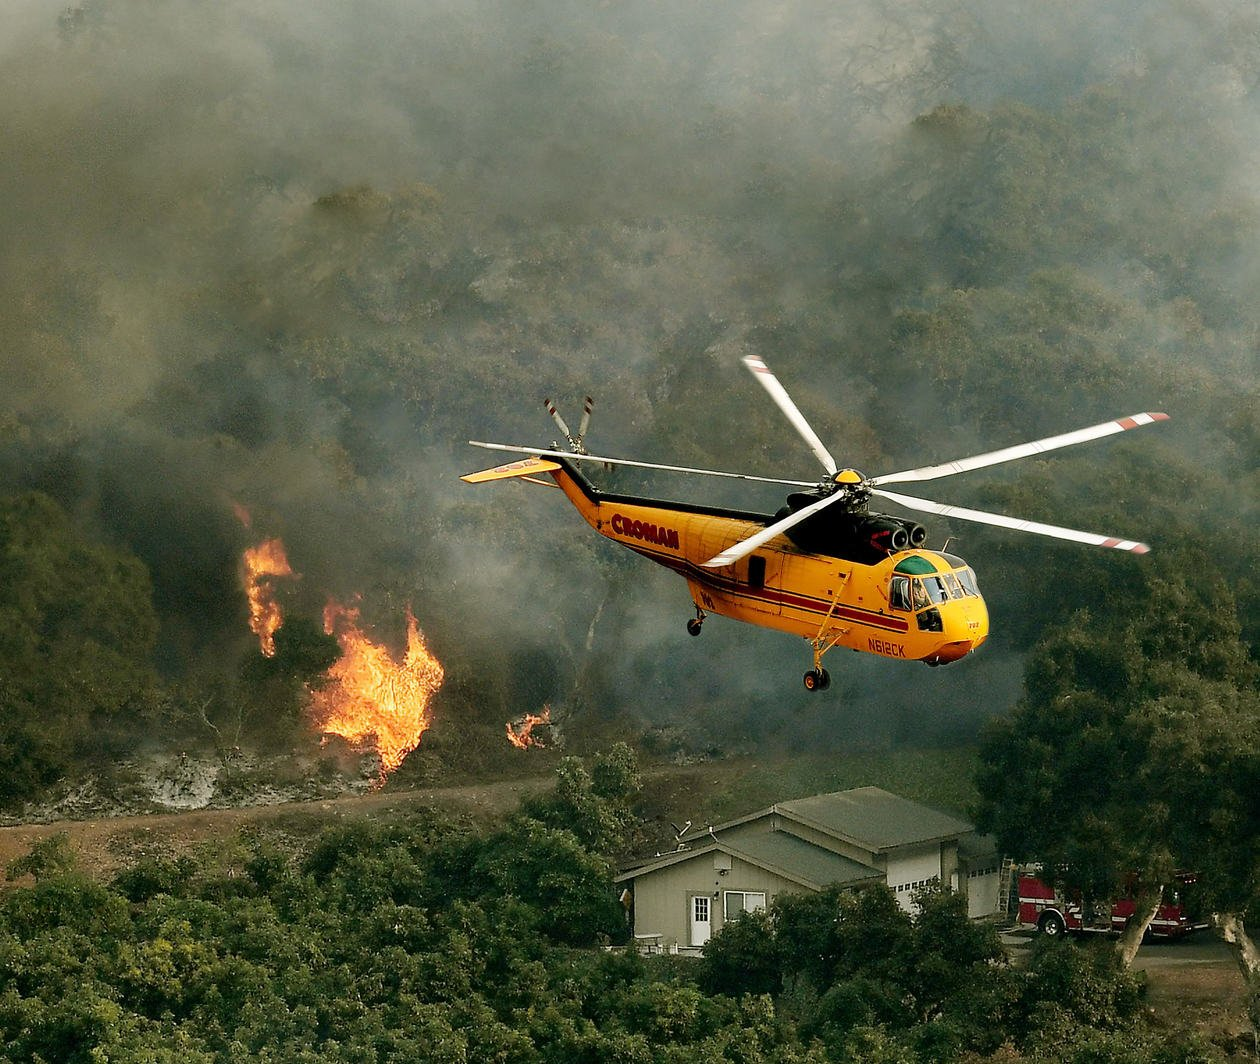 Managing Risk in an Emergency Context